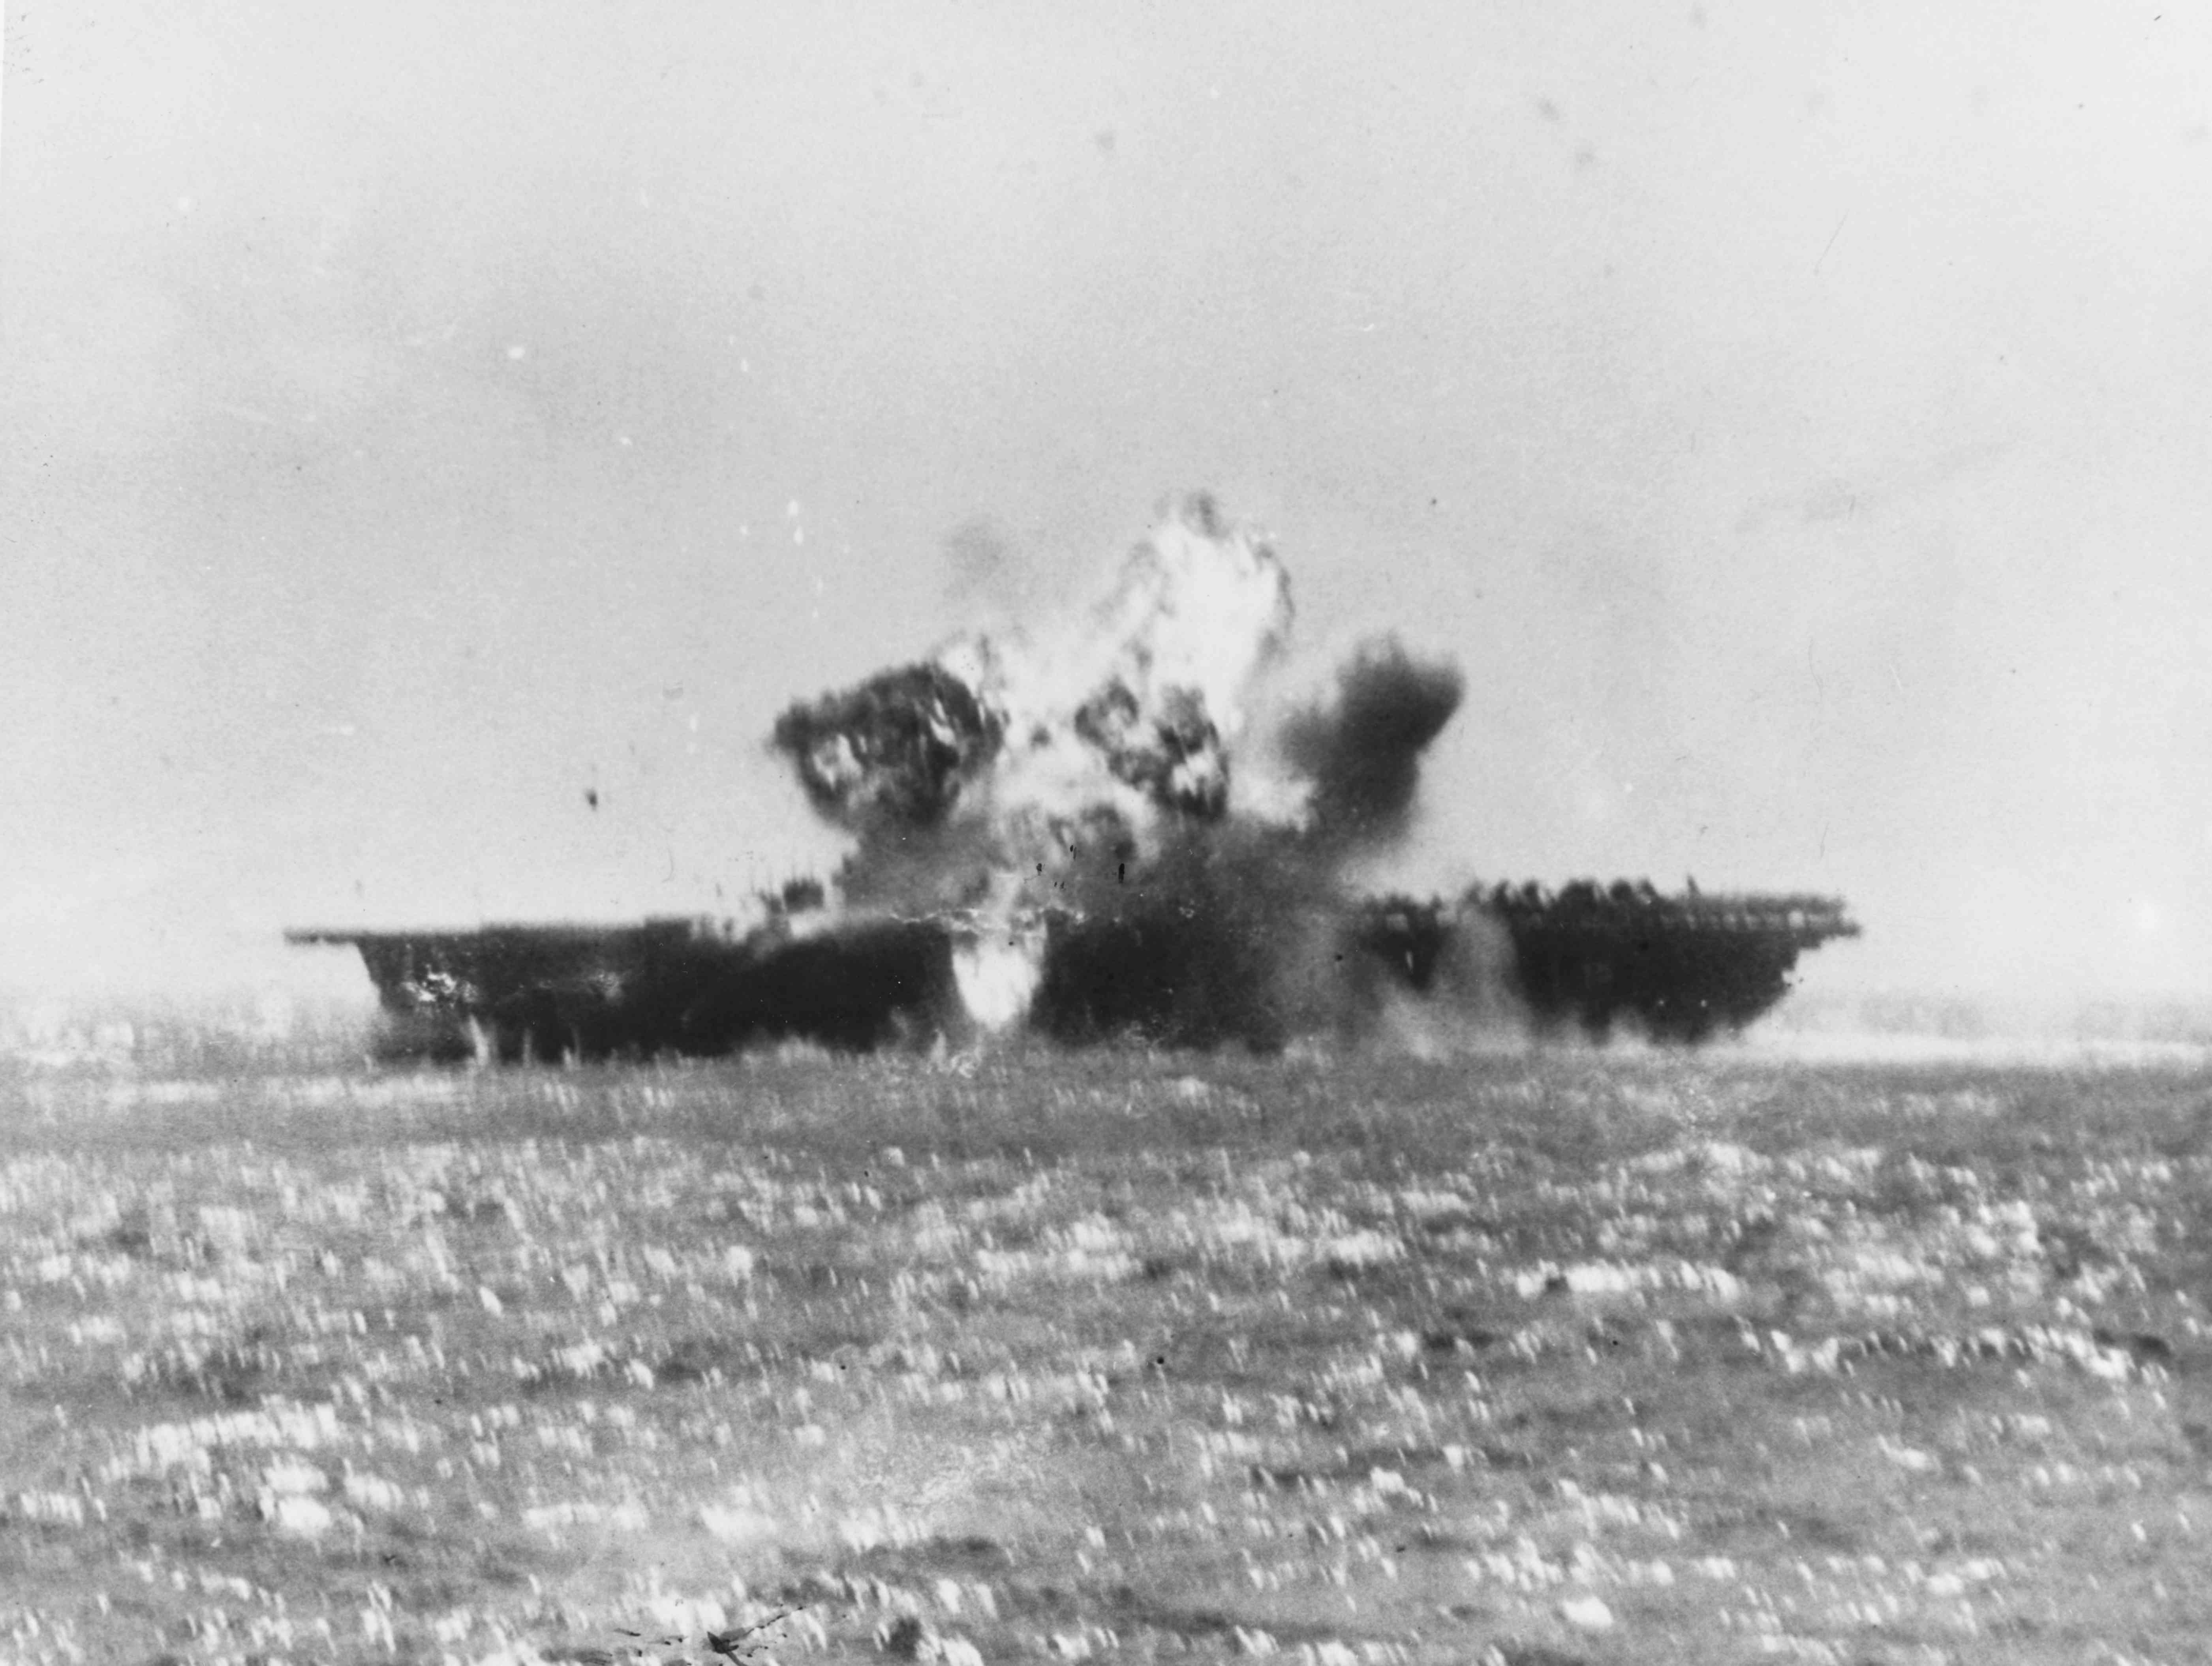 Photo of USS Essex being hit by a kamikaze.